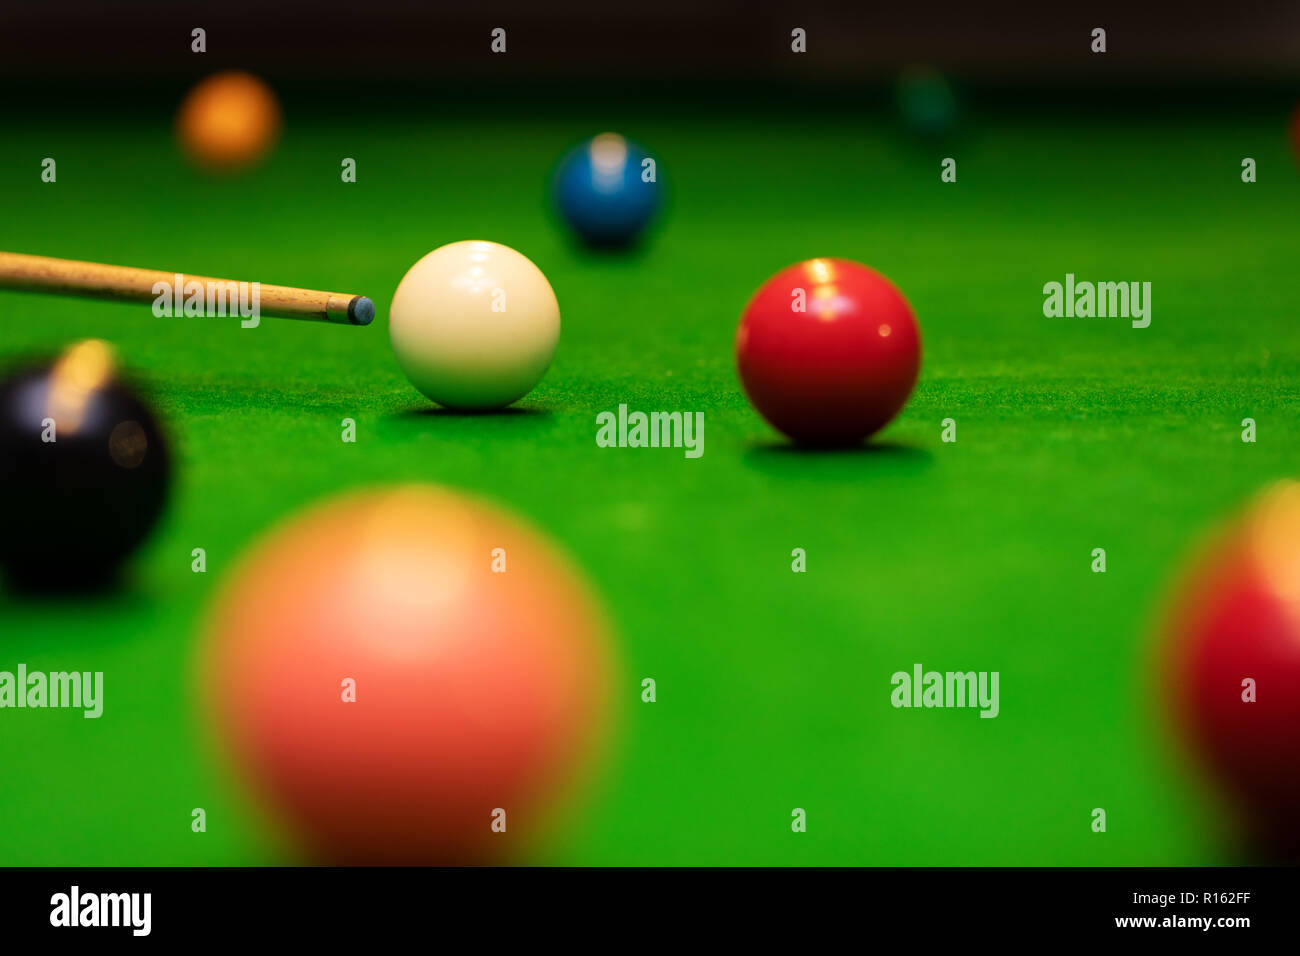 snooker game shot - player aiming the cue ball - Stock Image